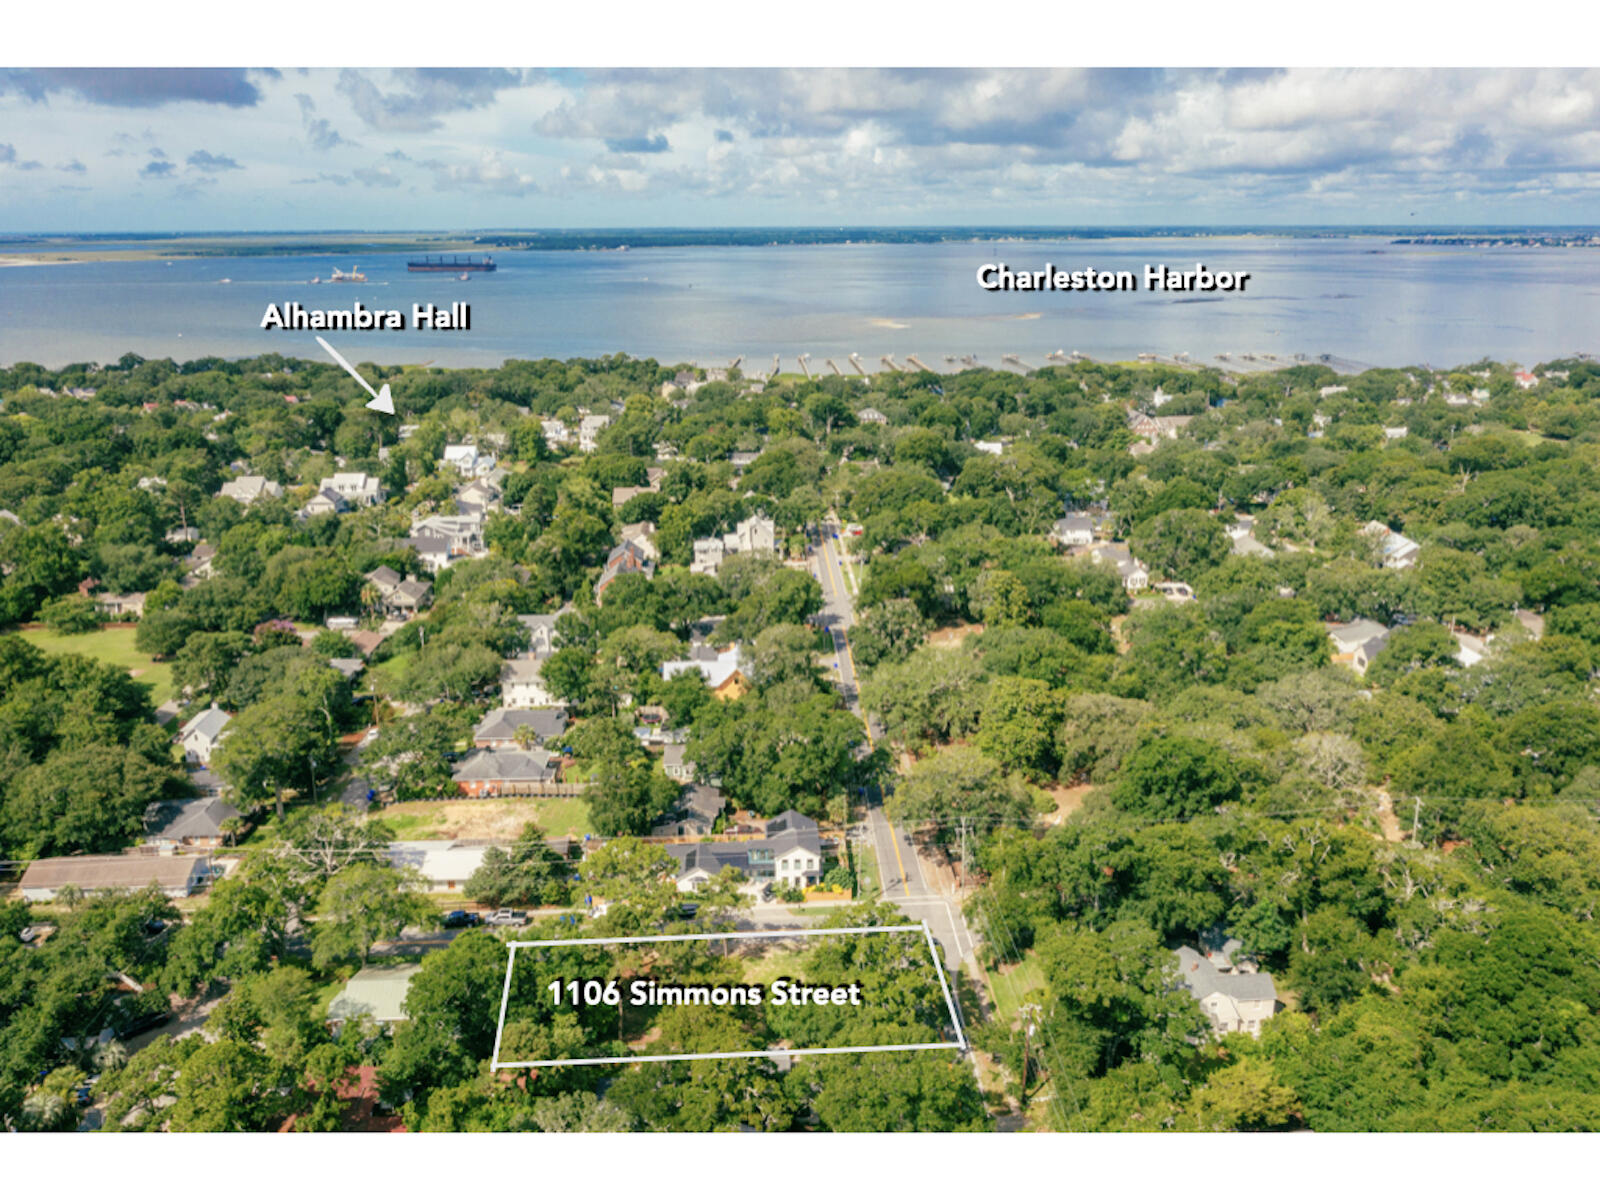 Old Mt Pleasant Homes For Sale - 1106 Simmons, Mount Pleasant, SC - 6